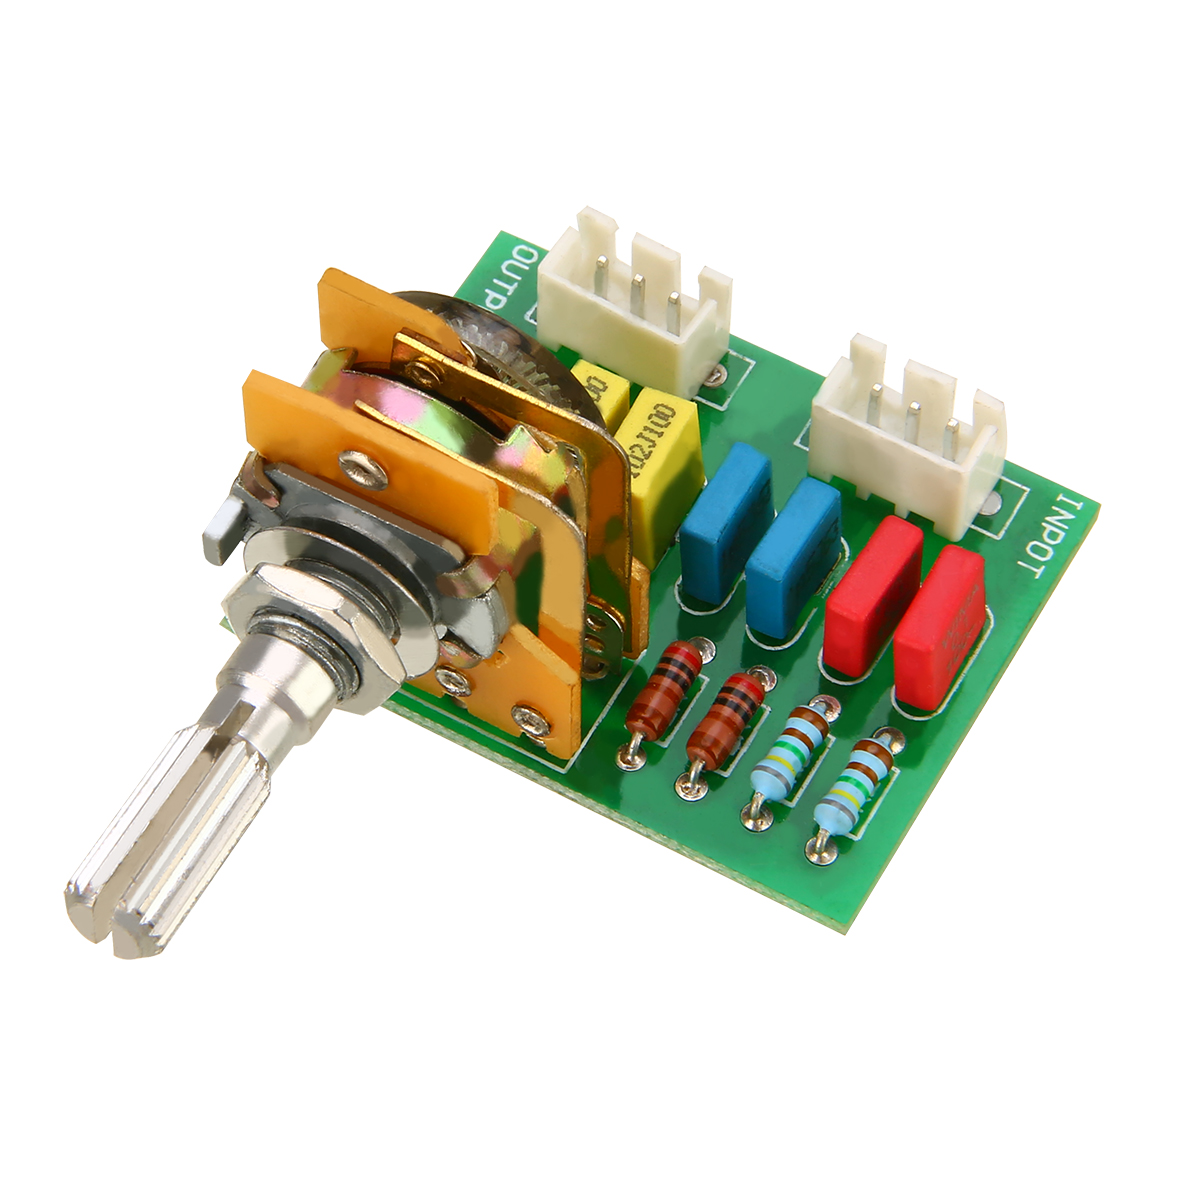 Mayitr Amplifier/Preamp Passive Tone Board Volume Control Sound Adjustable 16-type 50K 8-pin Passive Potentiometer Module